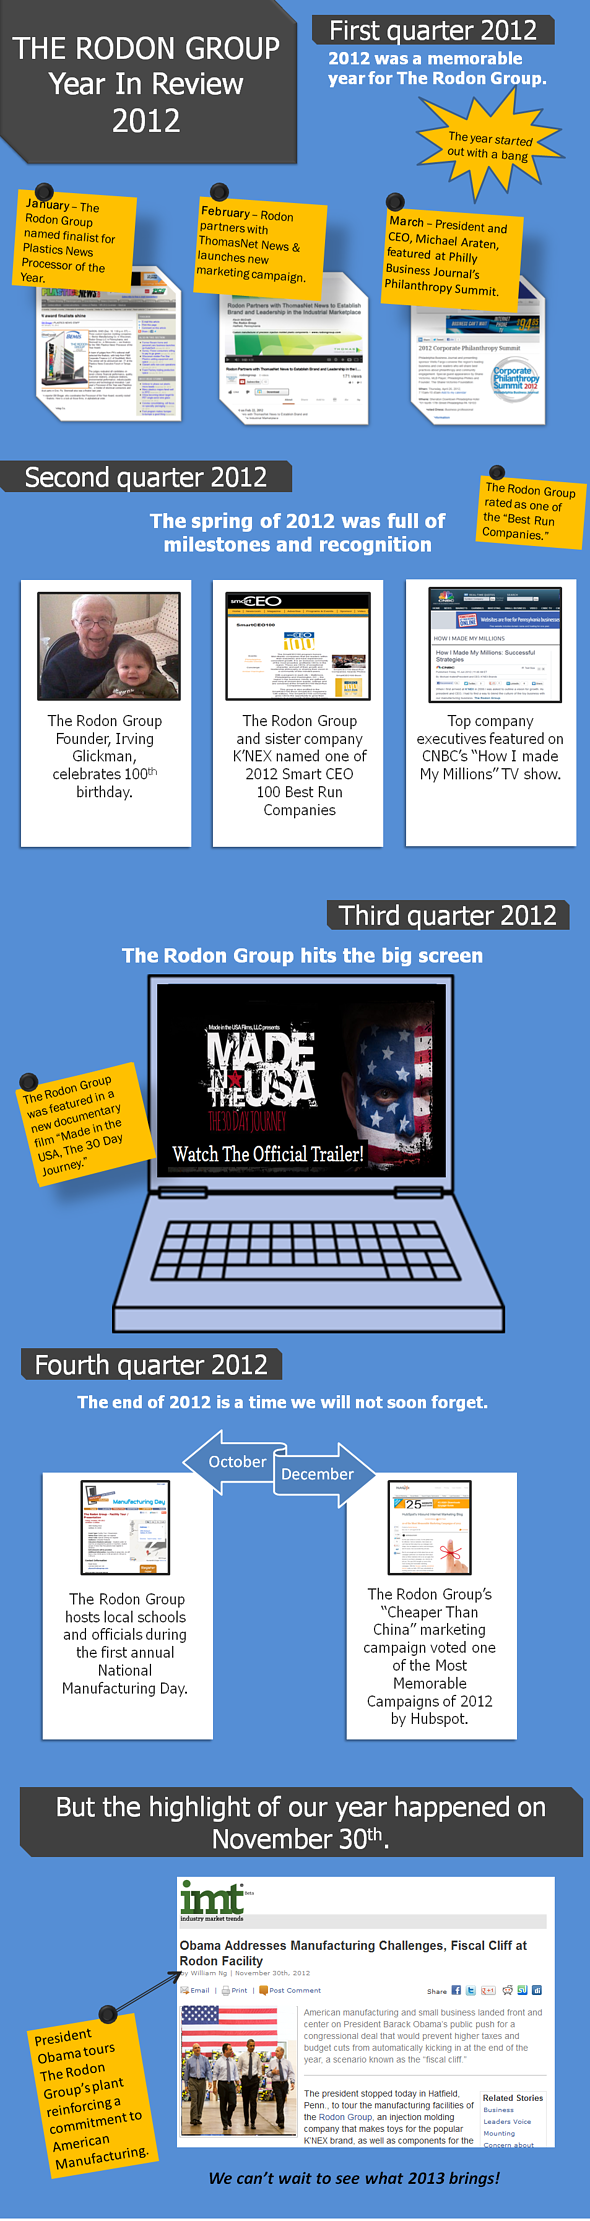 Rodon Group Infographic 2012 in review